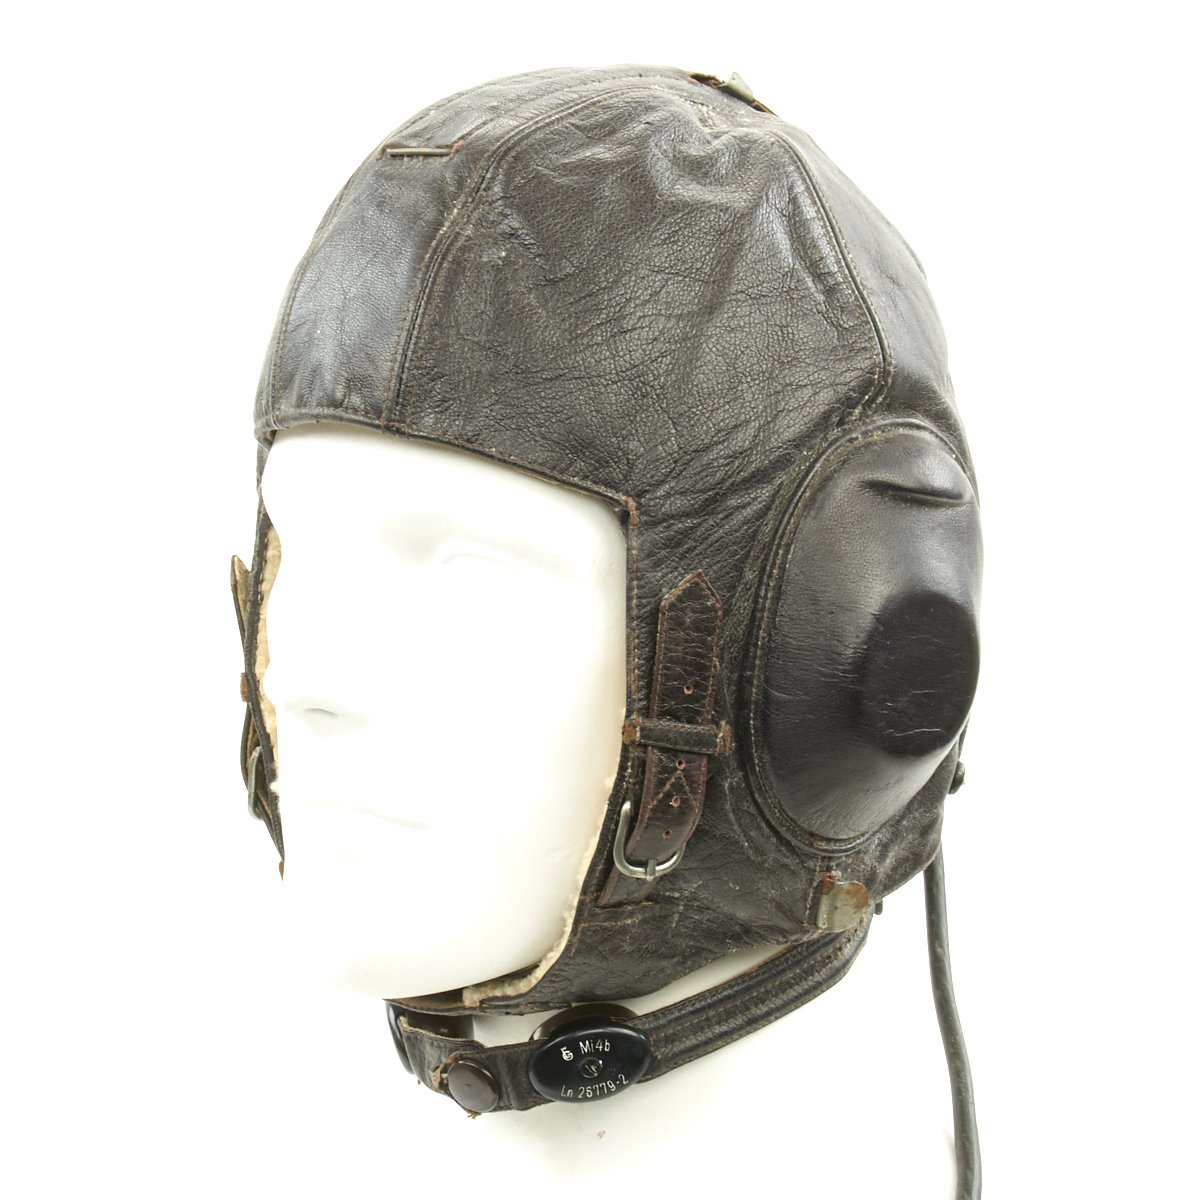 a43bad89e5e Original German WWII Luftwaffe Model LKPW101 Leather Flying Helmet with  Receiver and Microphone